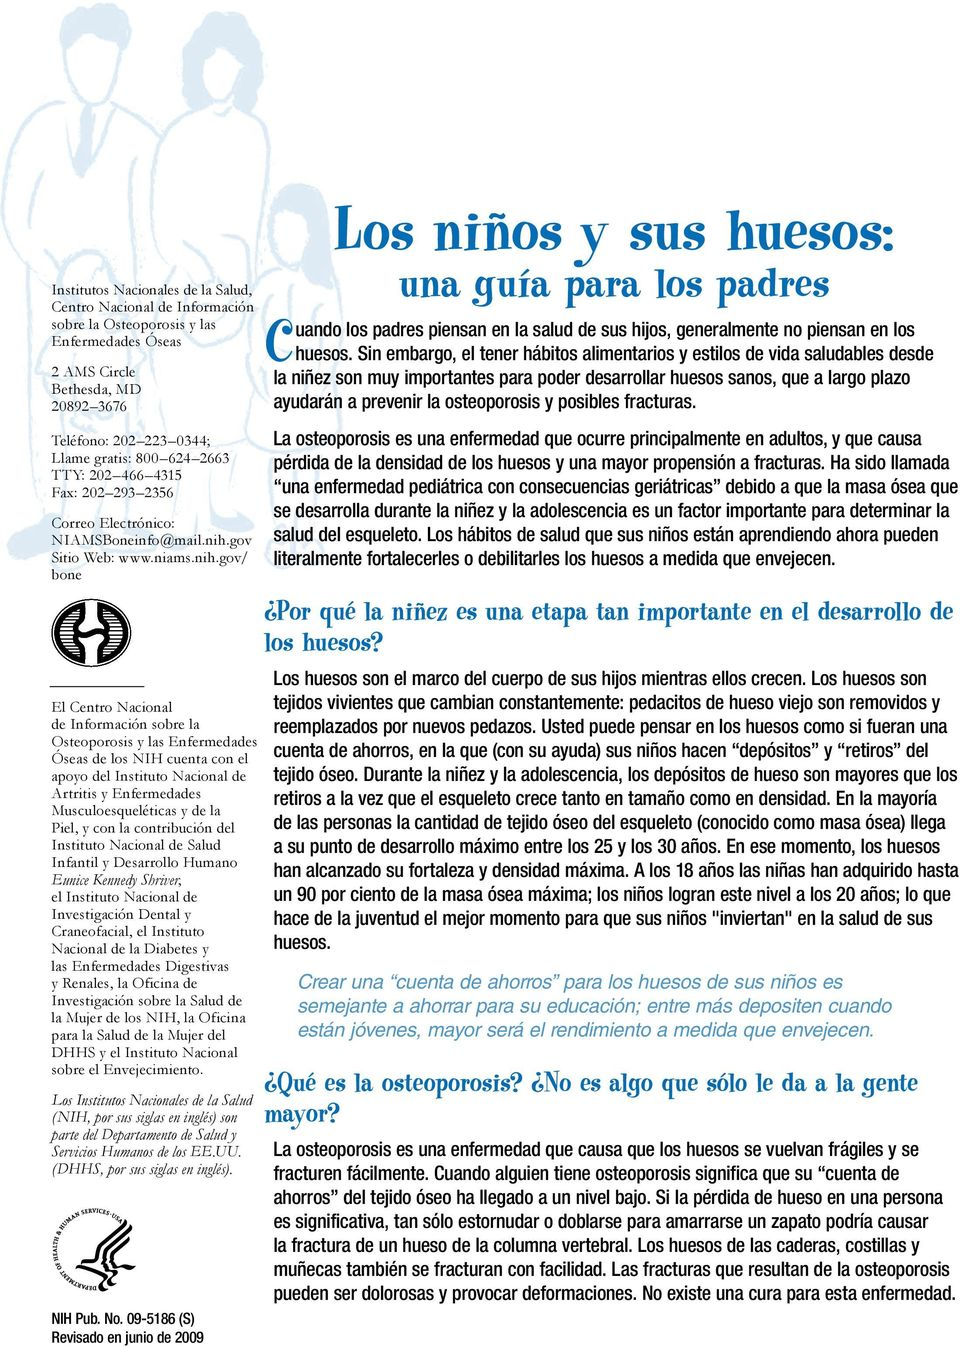 gov Sitio Web: www.niams.nih.